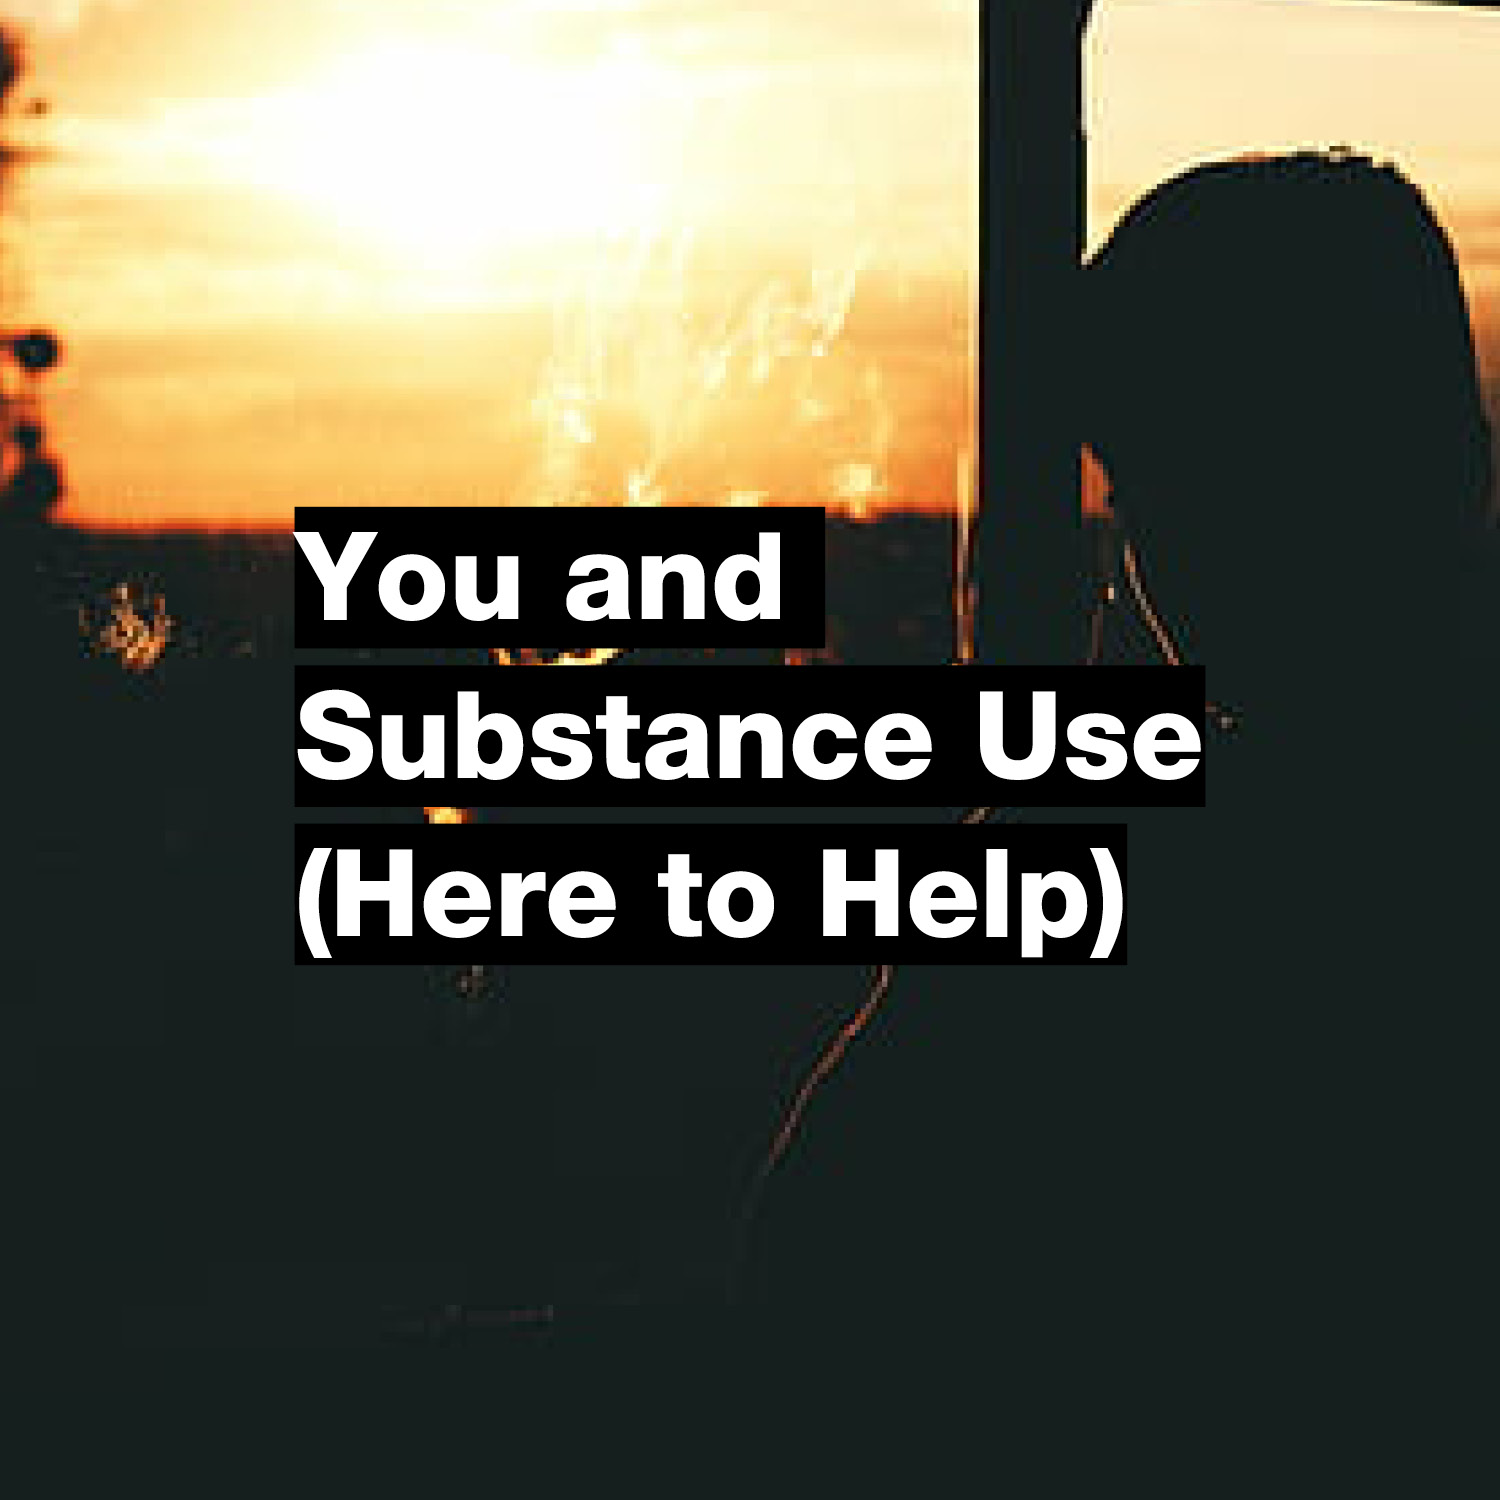 You and Substance Use (Here to Help)